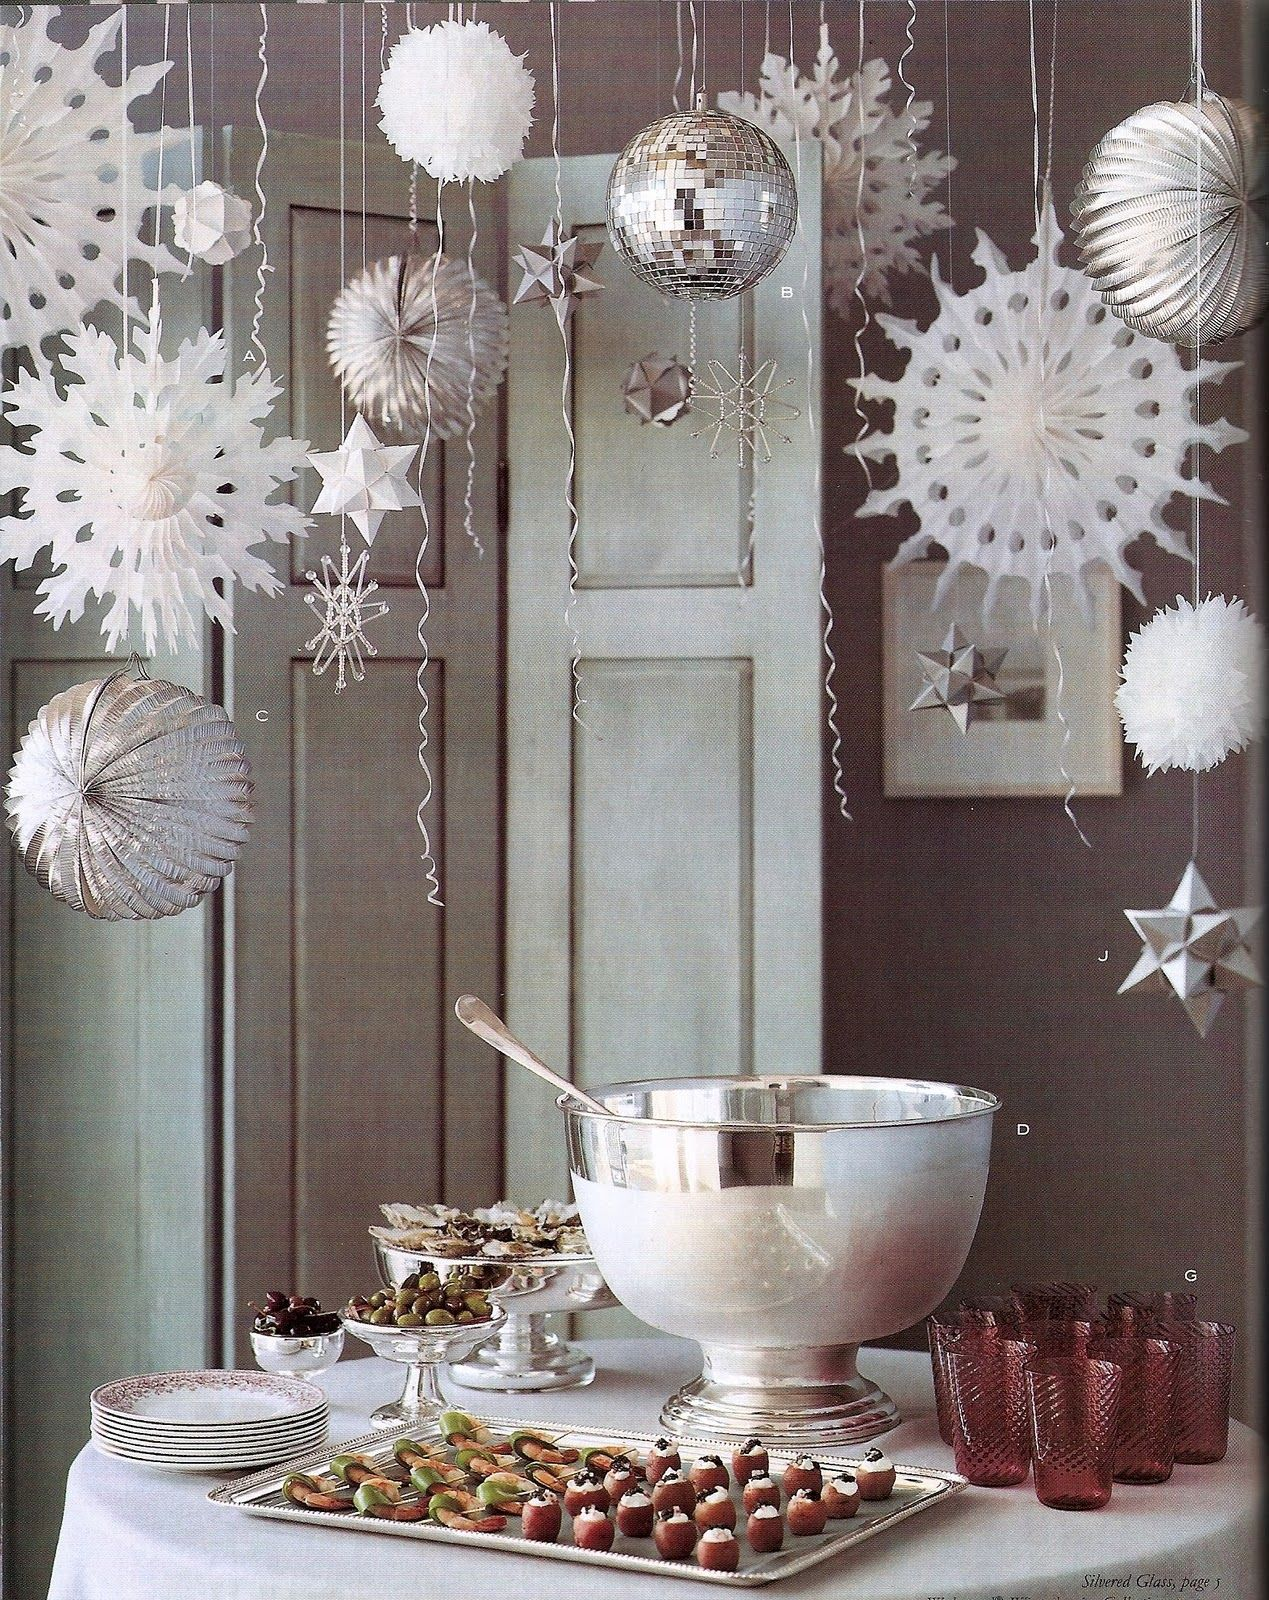 Superb Winter Wonderland Decorating Ideas For Christmas Part - 10: Winter Wonderland, Take Down The Snow Flakes And Add Some White Chinese  Lanterns For New Years